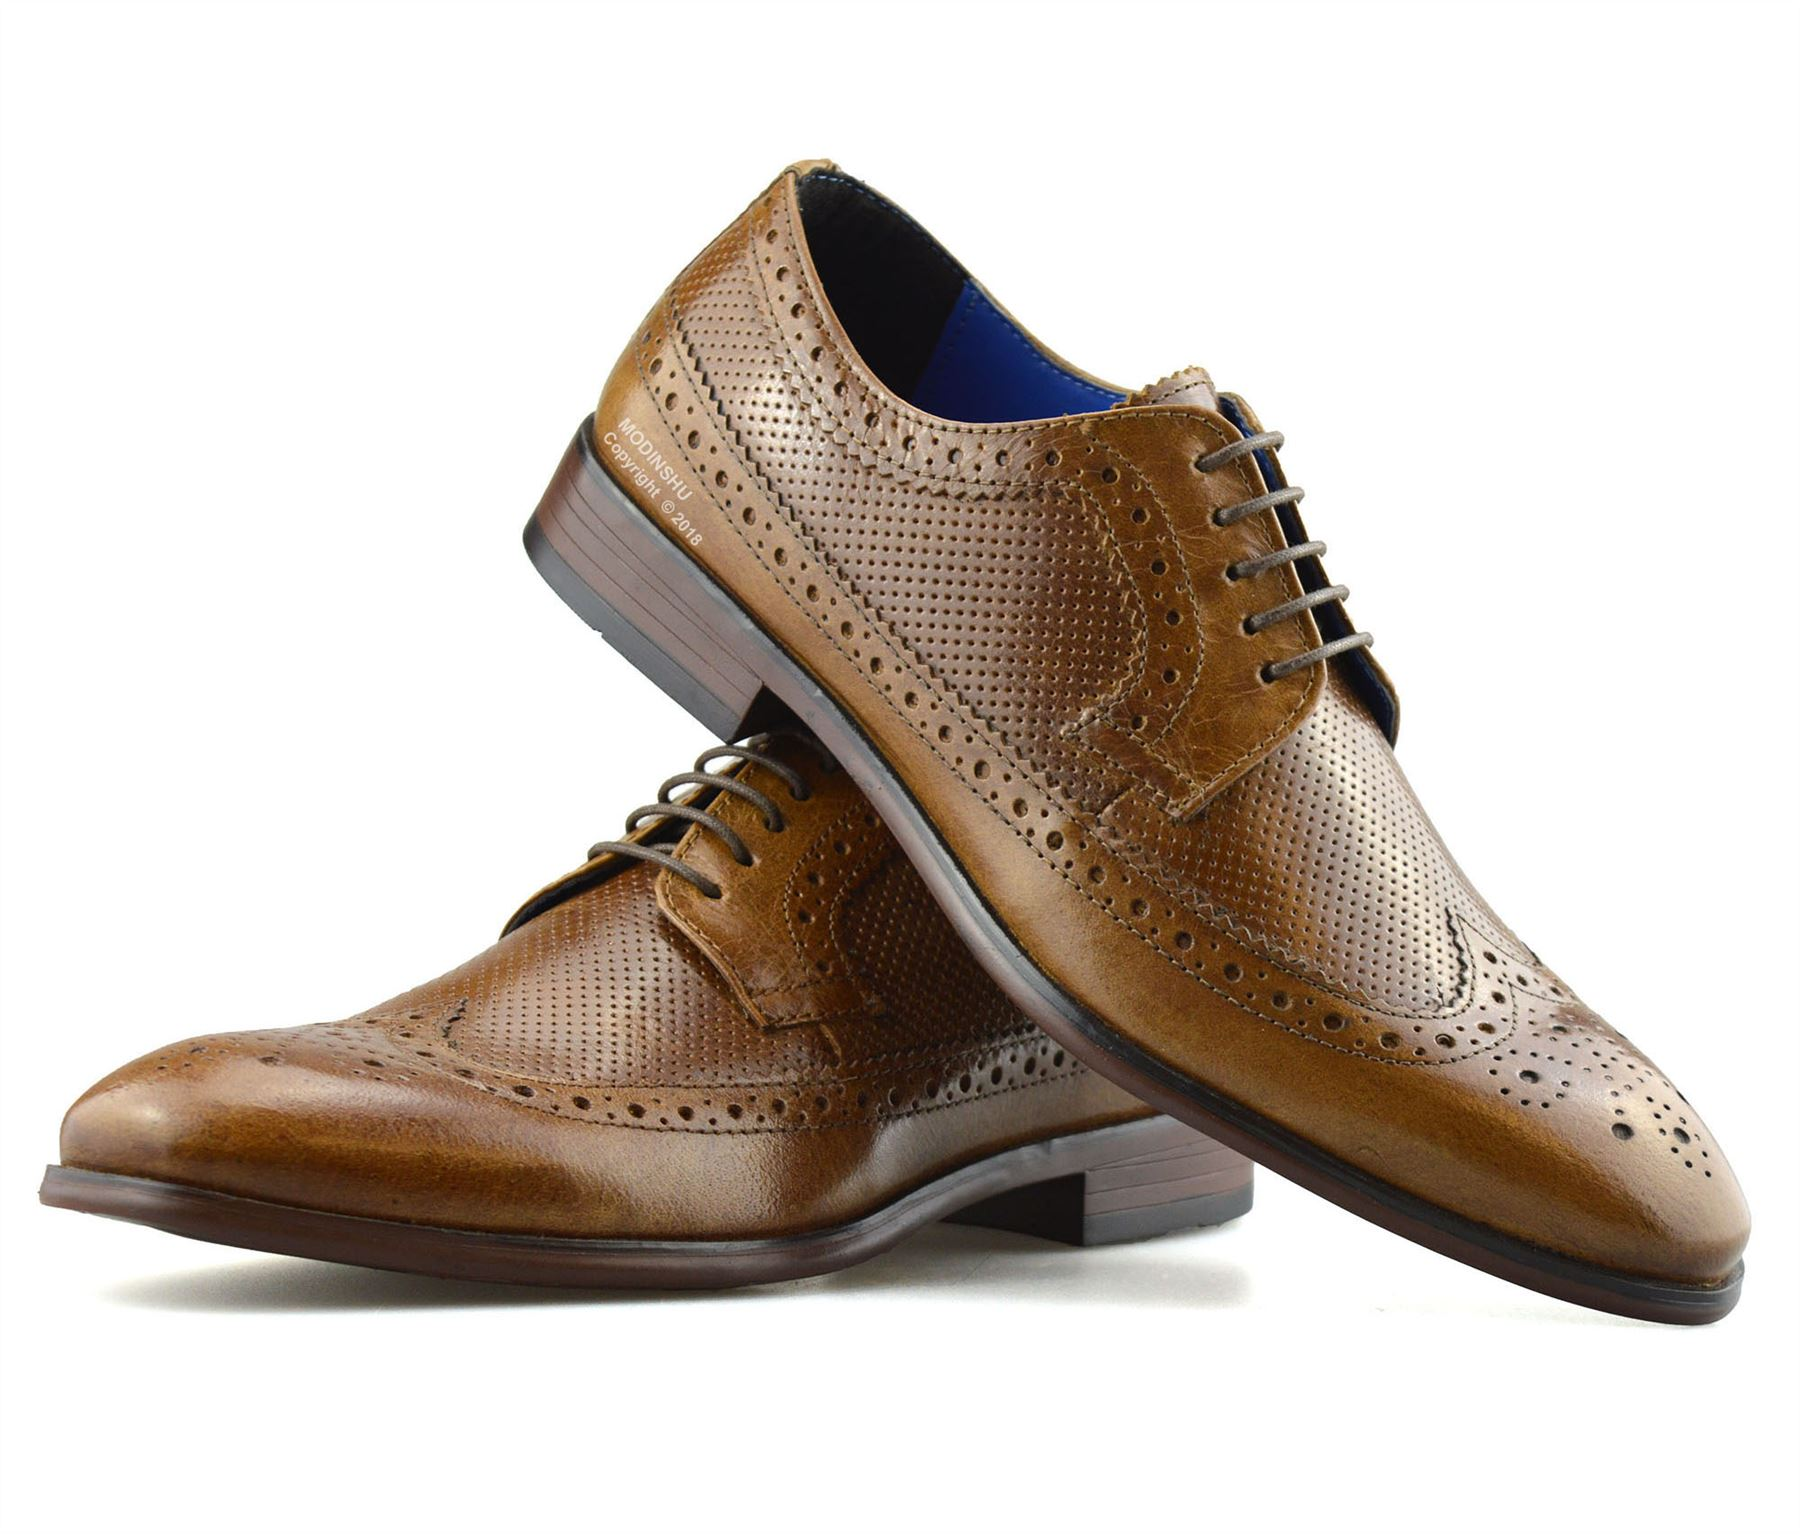 Mens-Leather-Brogues-Smart-Casual-Formal-Office-Lace-Up-Oxford-Brogue-Shoes-Size thumbnail 18